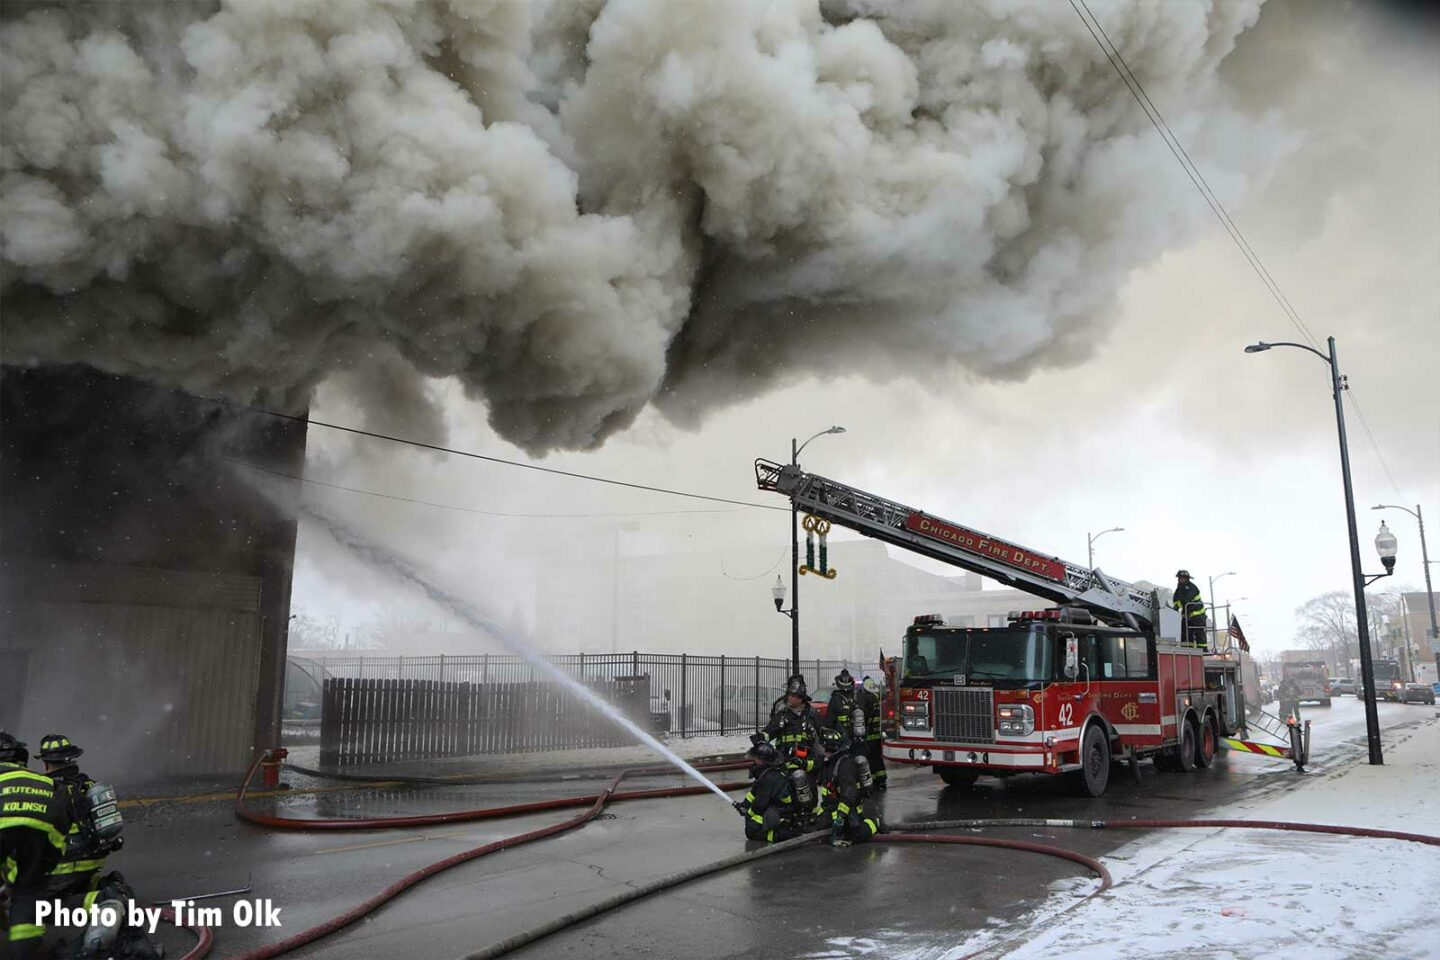 Firefighters direct a hose stream into the building